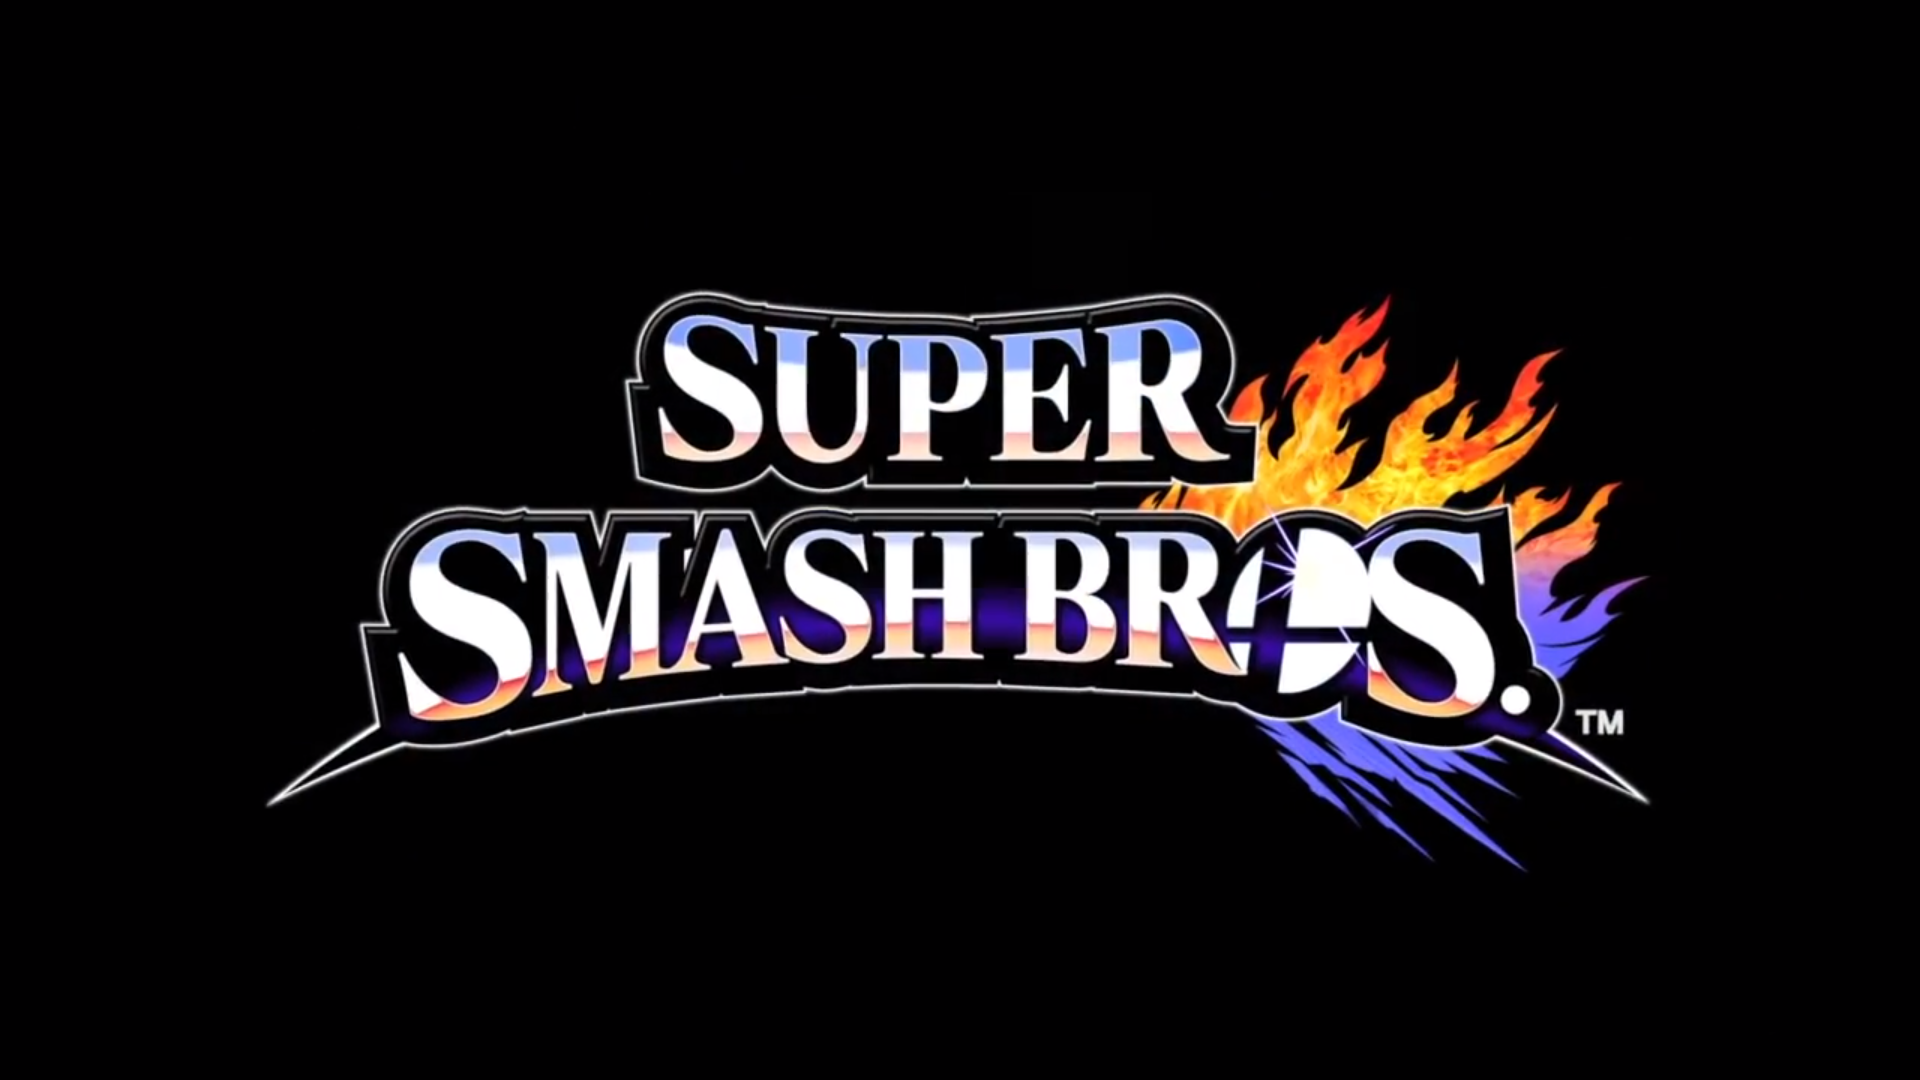 1920x1080 Amazing 4K Ultra HD Images of Smash, Full HD 1080p Desktop Images for PC&Mac, Laptop, Tablet, Mobile Phone